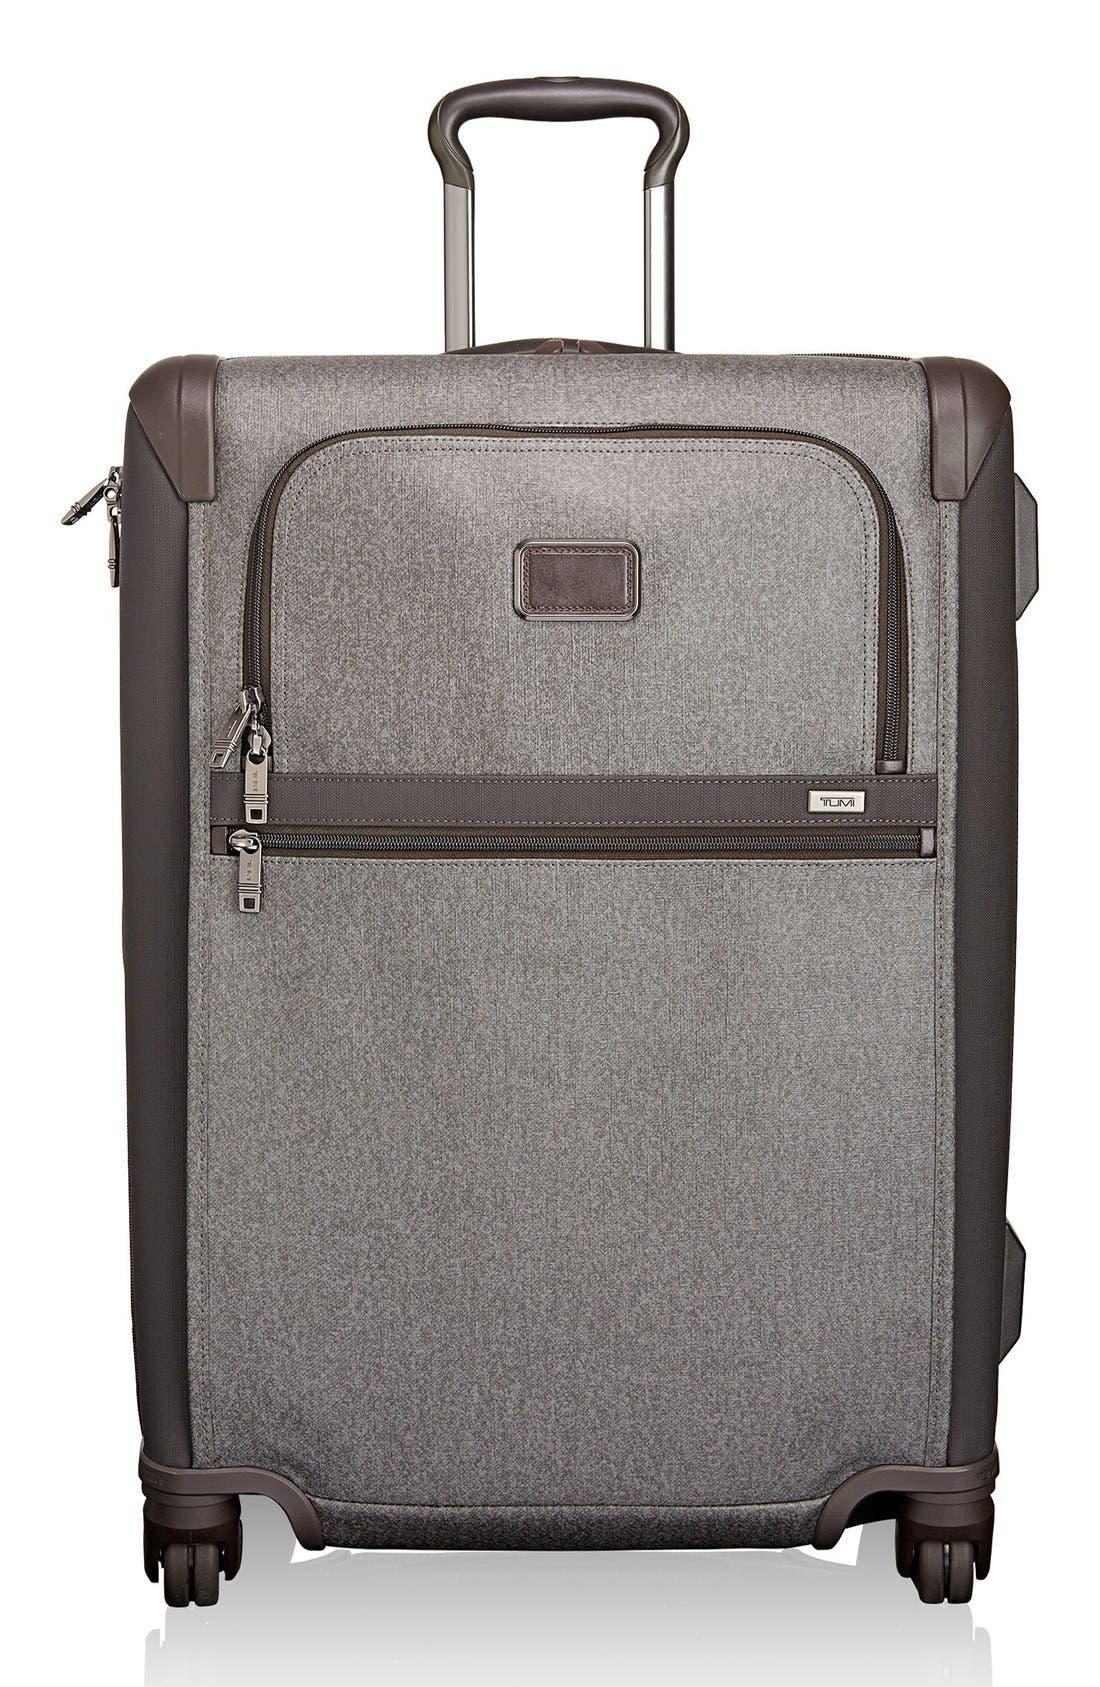 Alpha 2 Short Trip 26-Inch Rolling Four Wheel Packing Case,                             Main thumbnail 1, color,                             Earl Grey